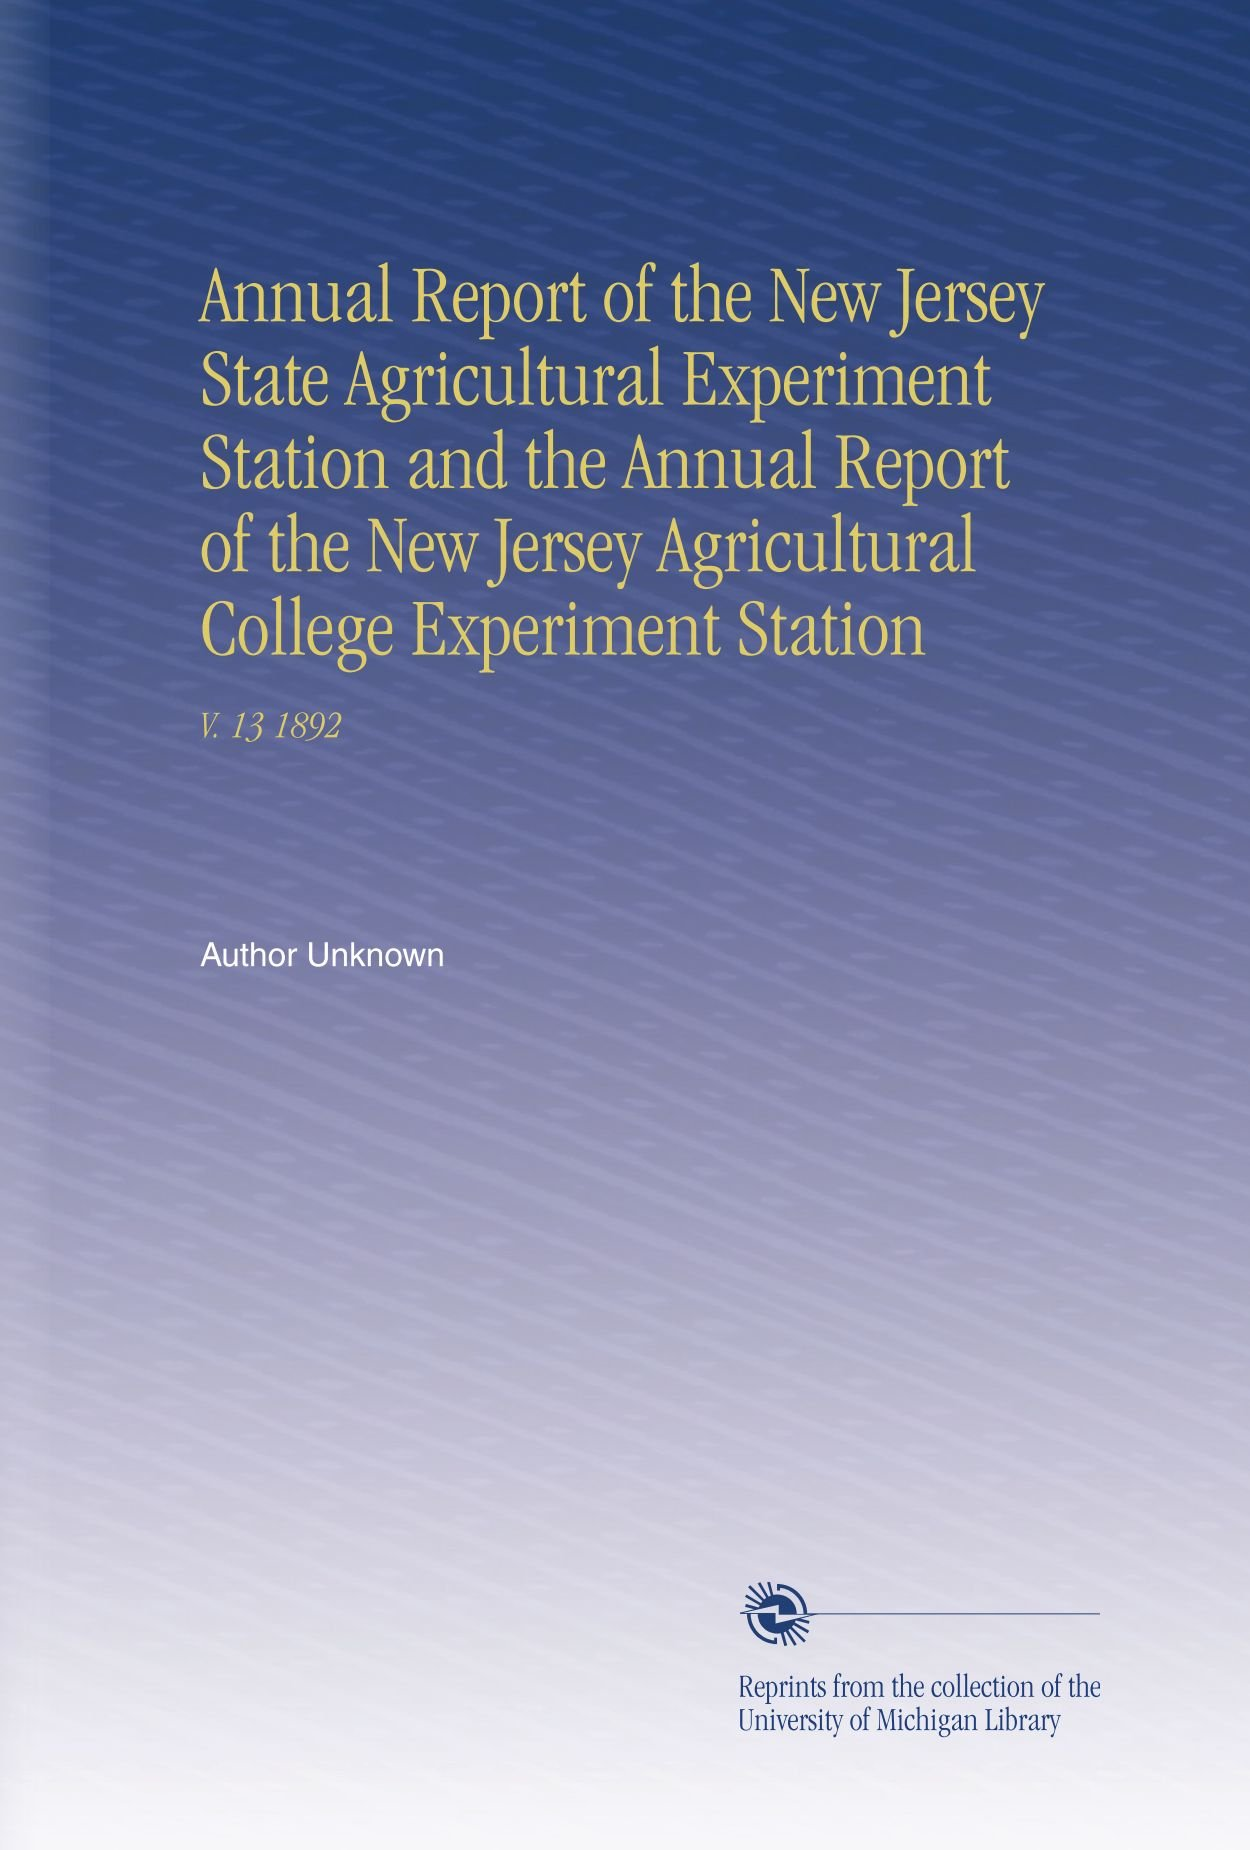 Download Annual Report of the New Jersey State Agricultural Experiment Station and the Annual Report of the New Jersey Agricultural College Experiment Station: V. 13 1892 PDF